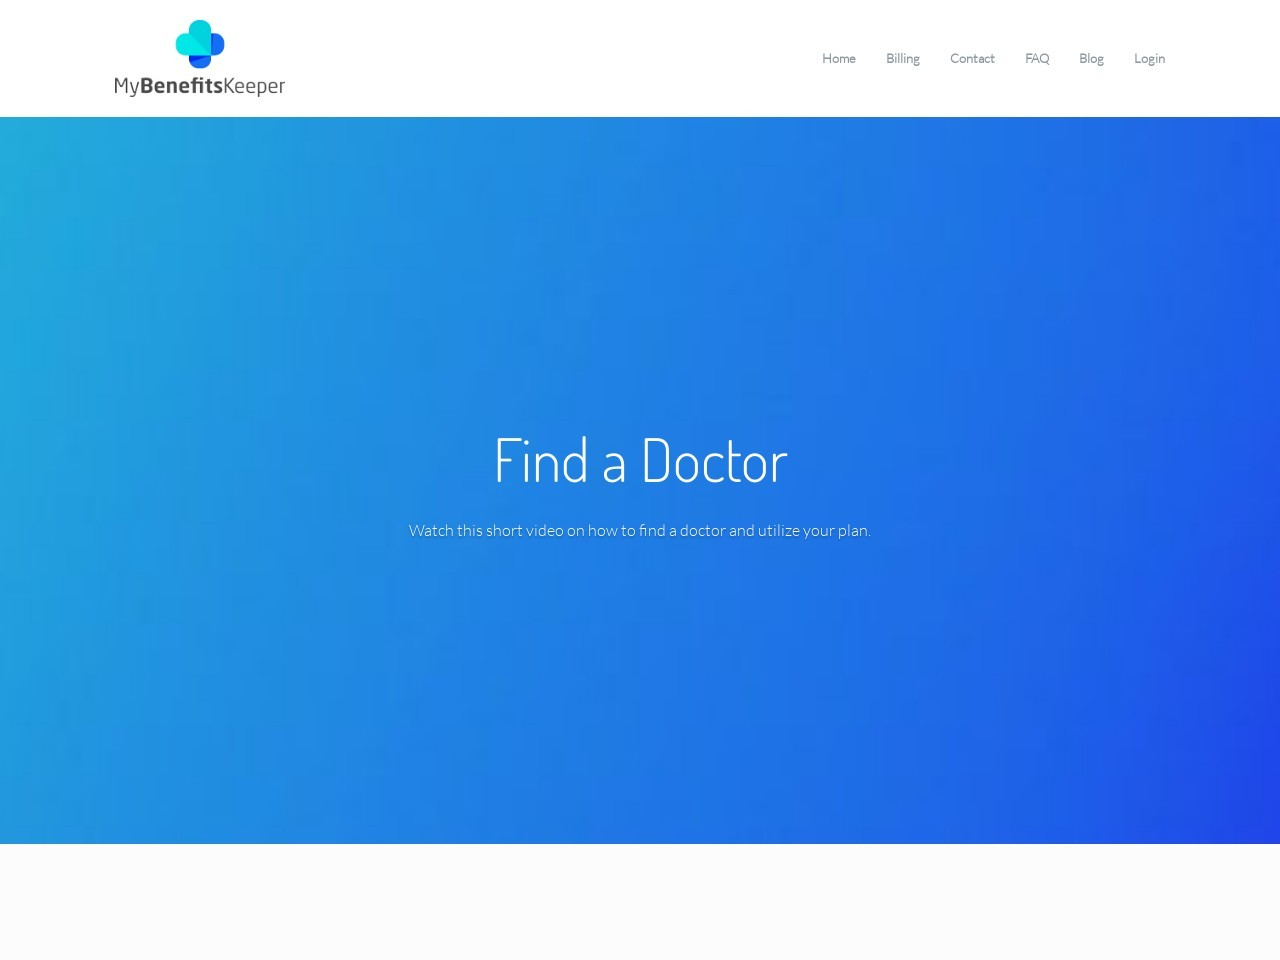 Multiplan Network - Find a Doctor - MyBenefitsKeeper